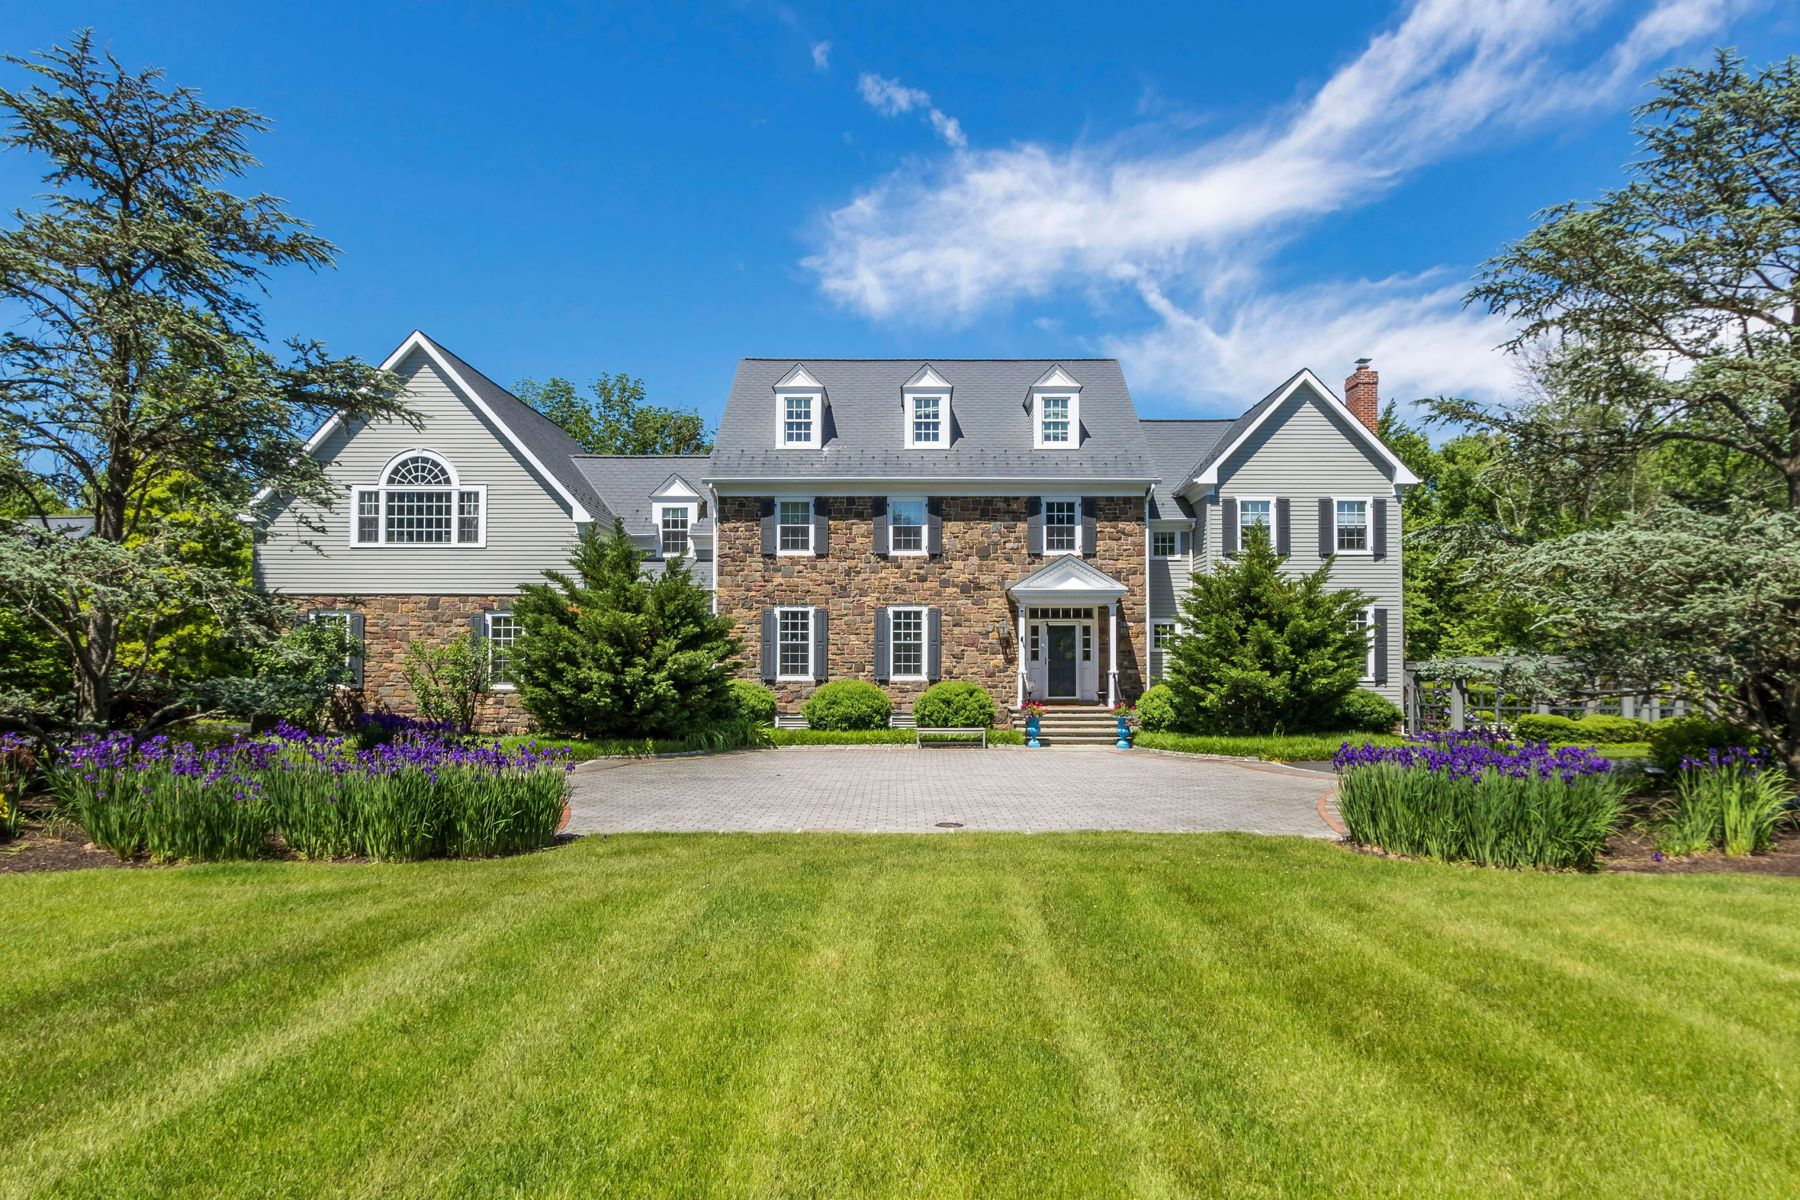 Farm / Estate for Sale at 341 PINEVILLE RD Newtown, Pennsylvania 18940 United States